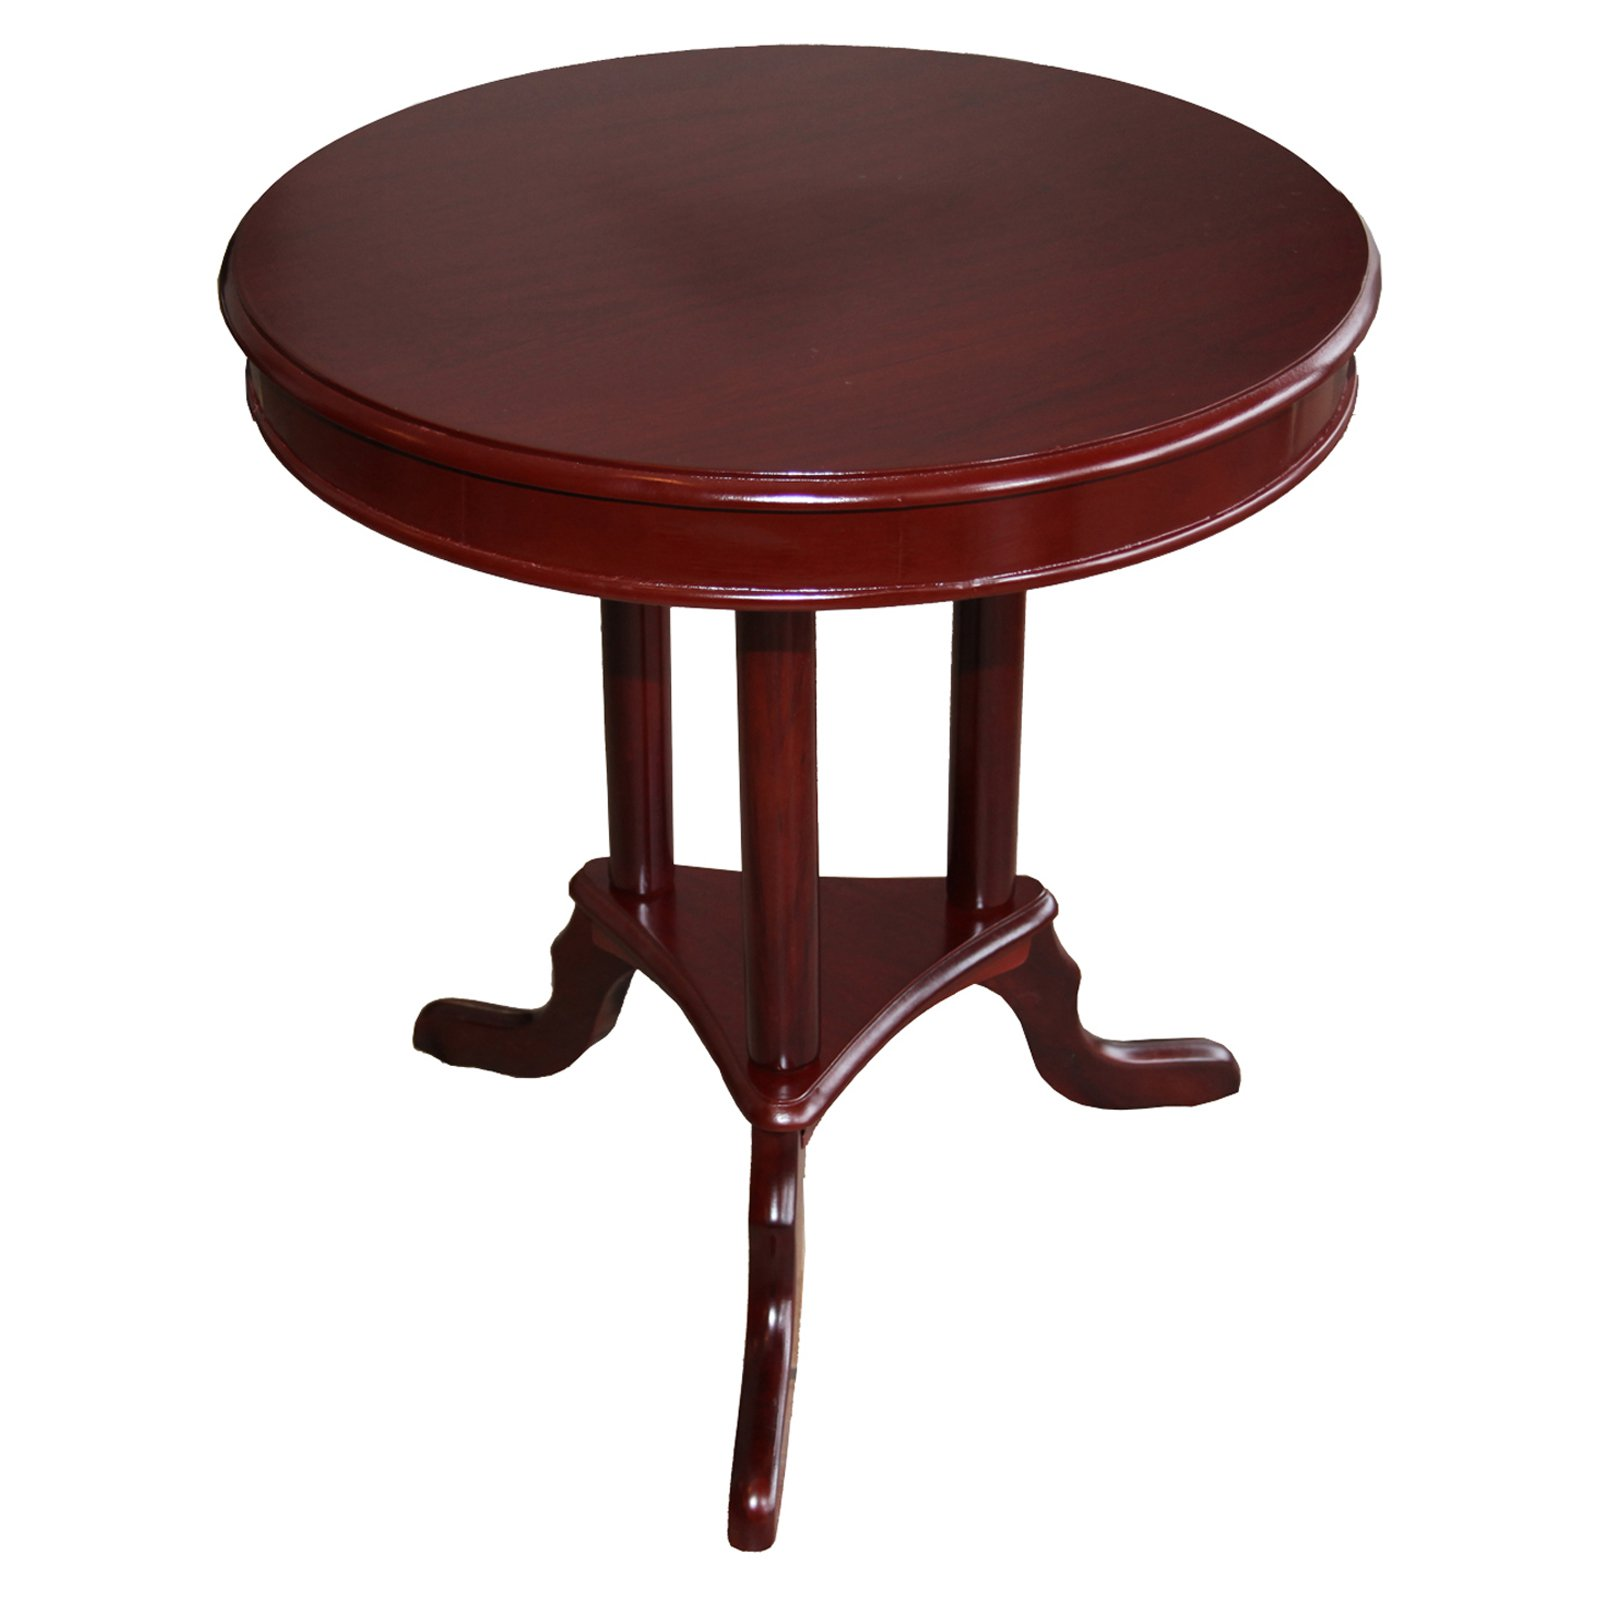 Home Source Industries Circle Accent Table by Home Source